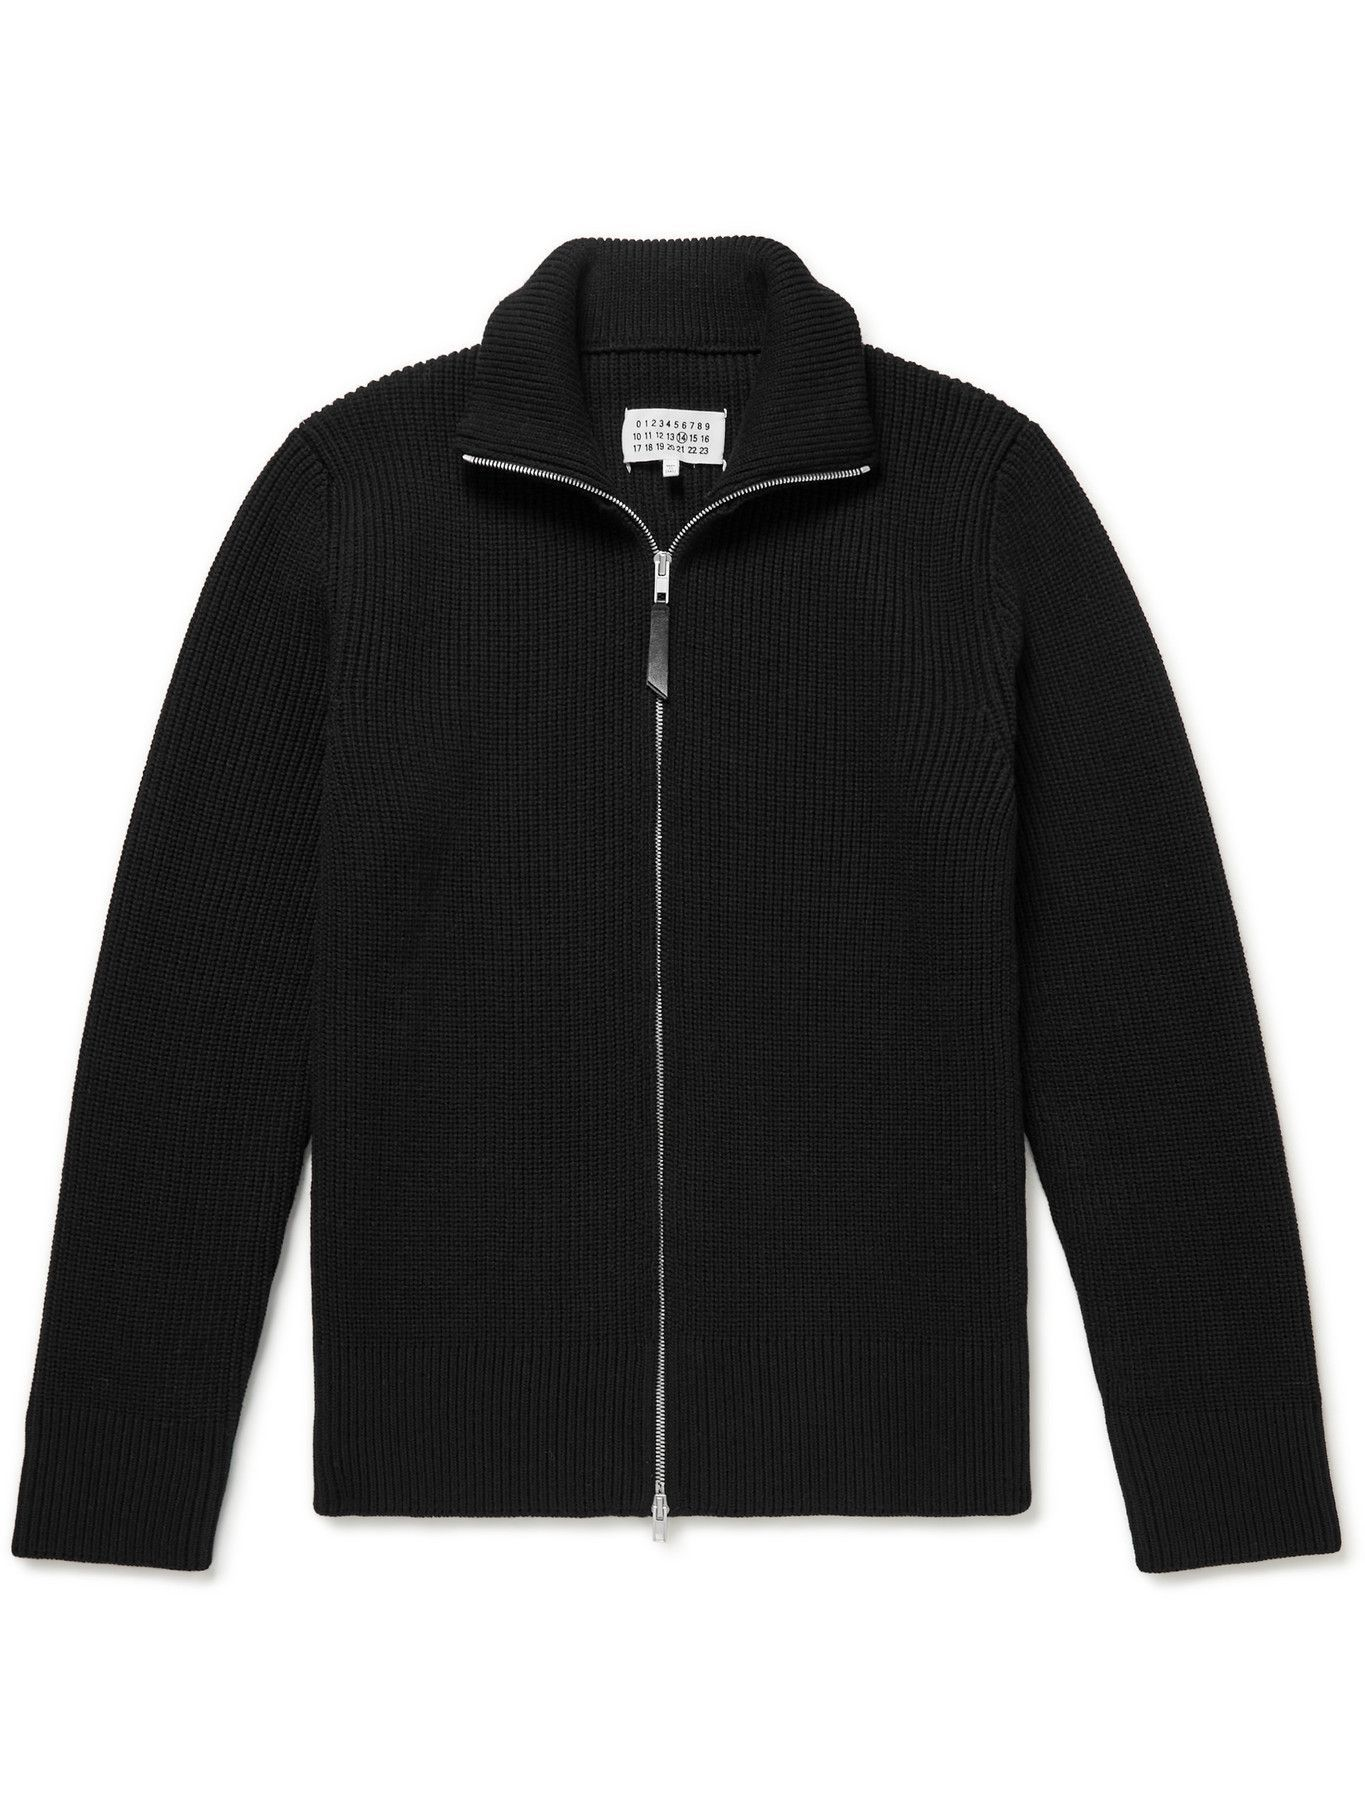 Maison Margiela - Ribbed Cotton and Wool-Blend Zip-Up Sweater - Black